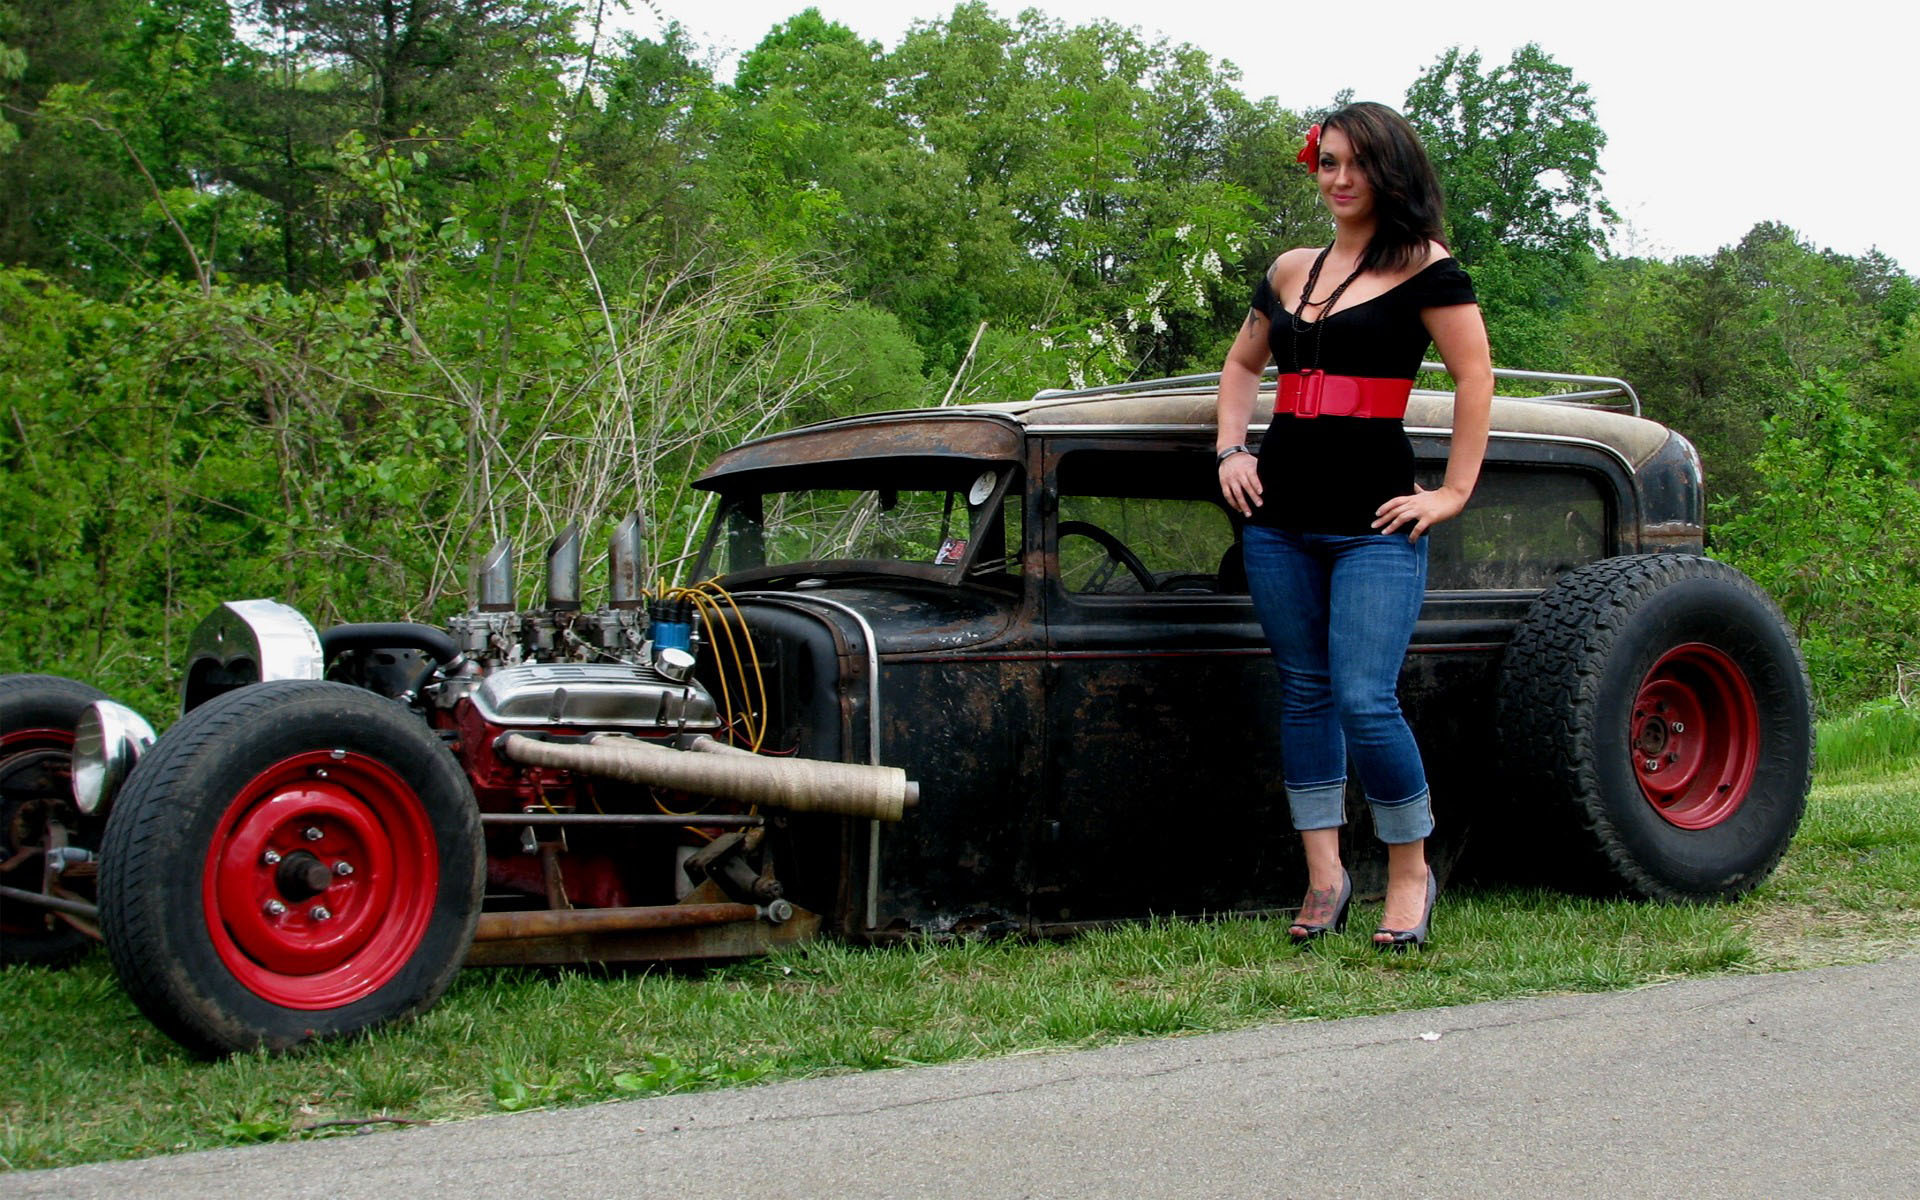 Ratrod chicks pics, naked pitcher of ino